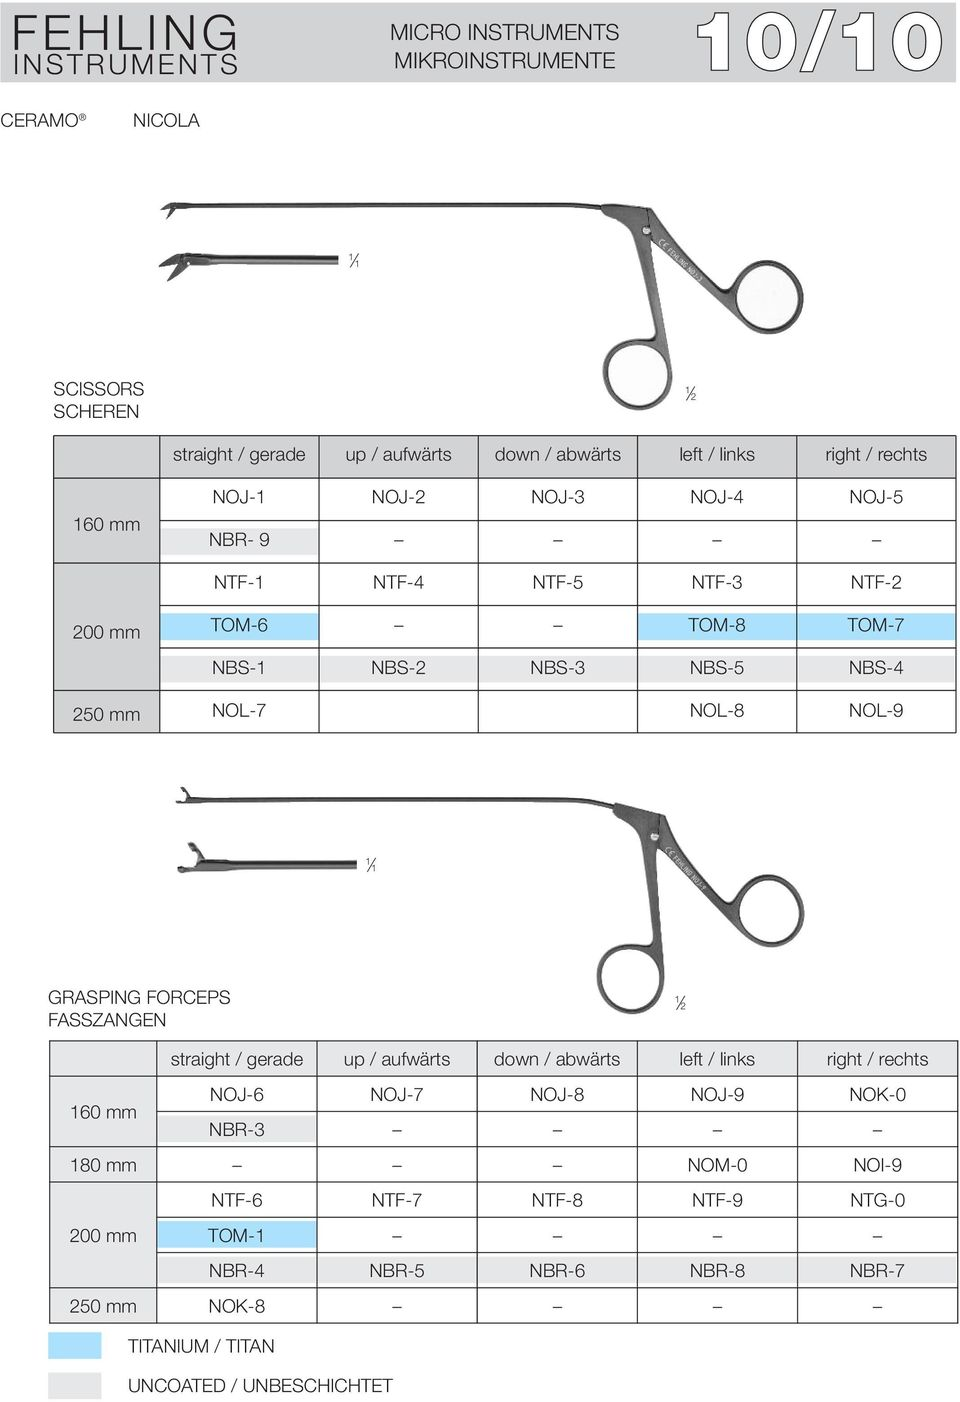 NOL-9 GRASPING FORCEPS FASSZANGEN stright / gerde up / ufwärts down / bwärts left / links right / rechts 60 mm NOJ-6 NOJ-7 NOJ-8 NOJ-9 NOK-0